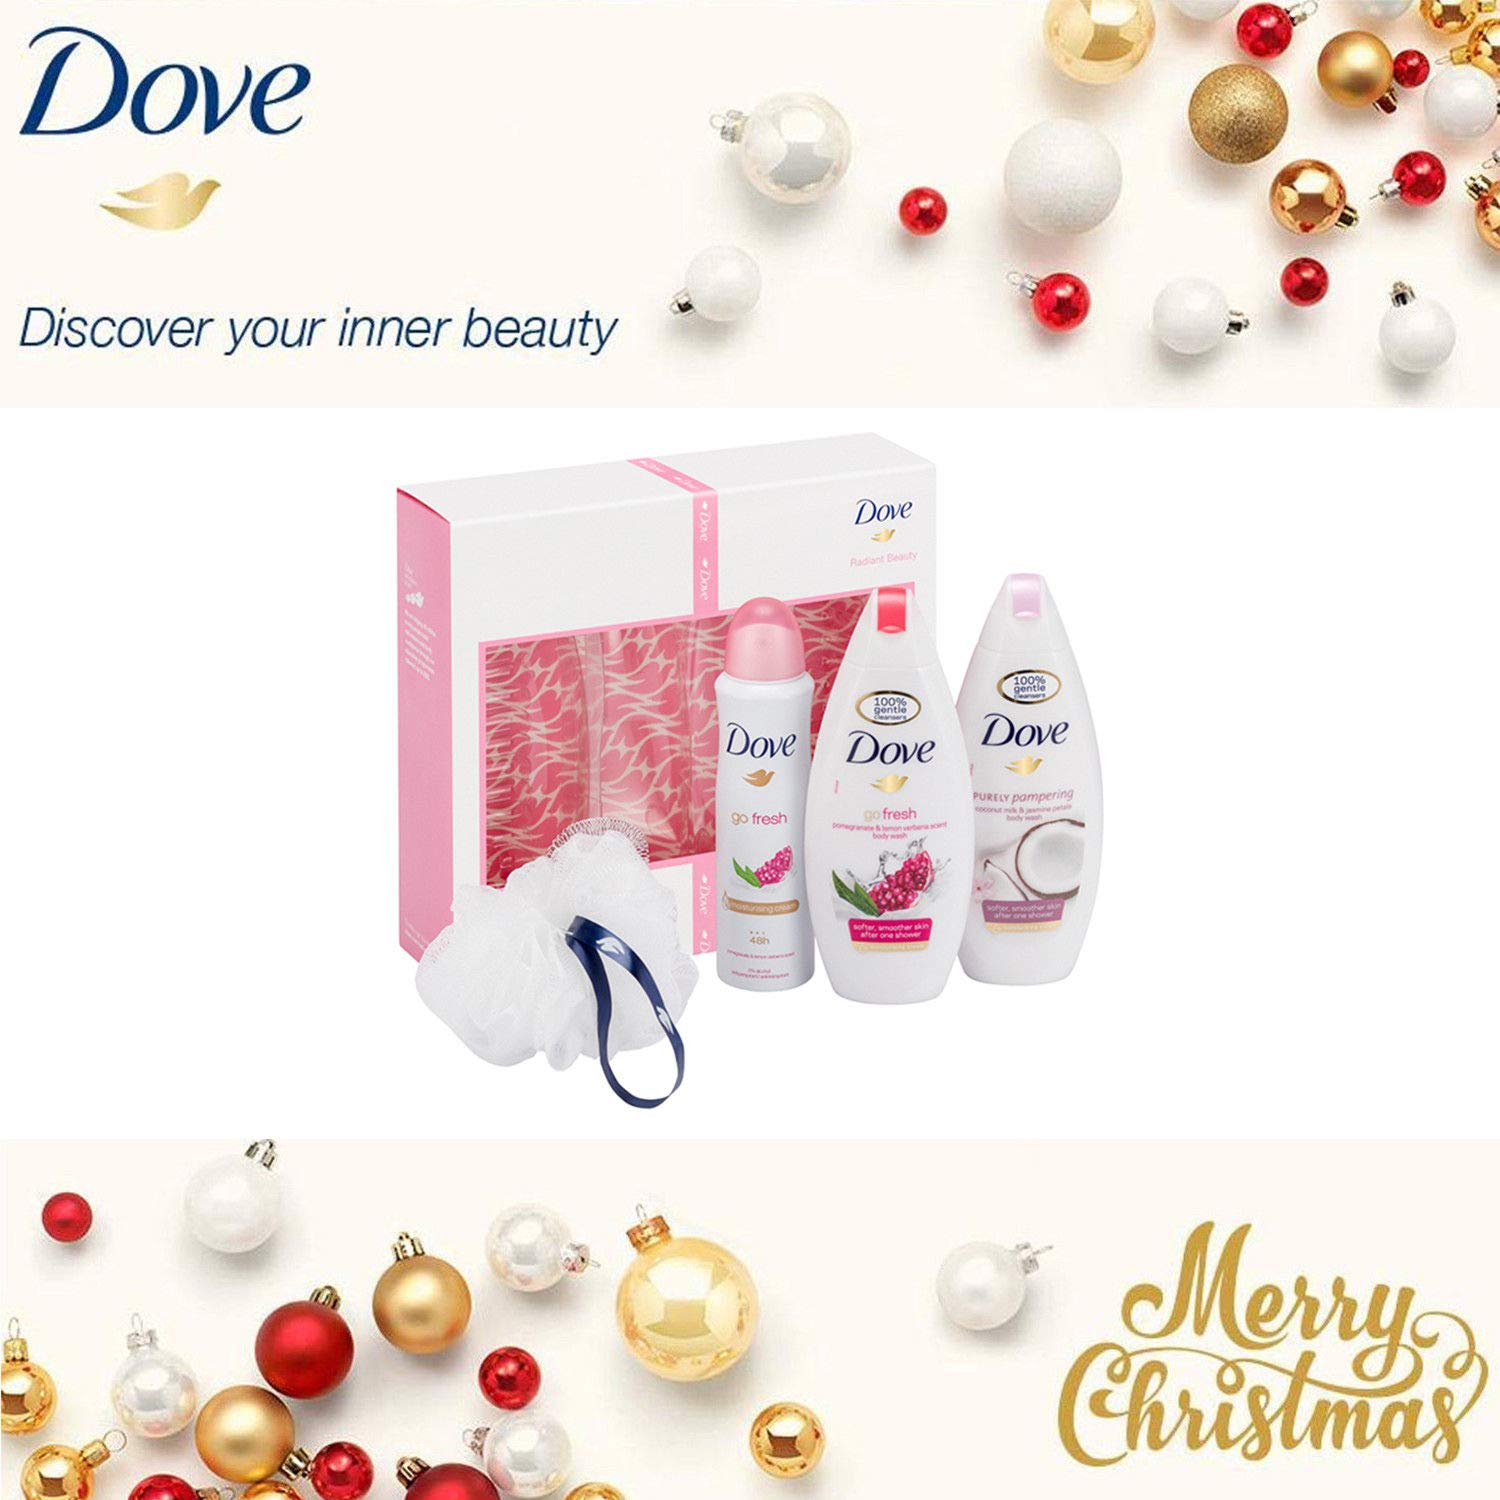 Dove Radiant Beauty Body Wash And Antiperspirant Trio Gift Set With Shower Puff Unilever